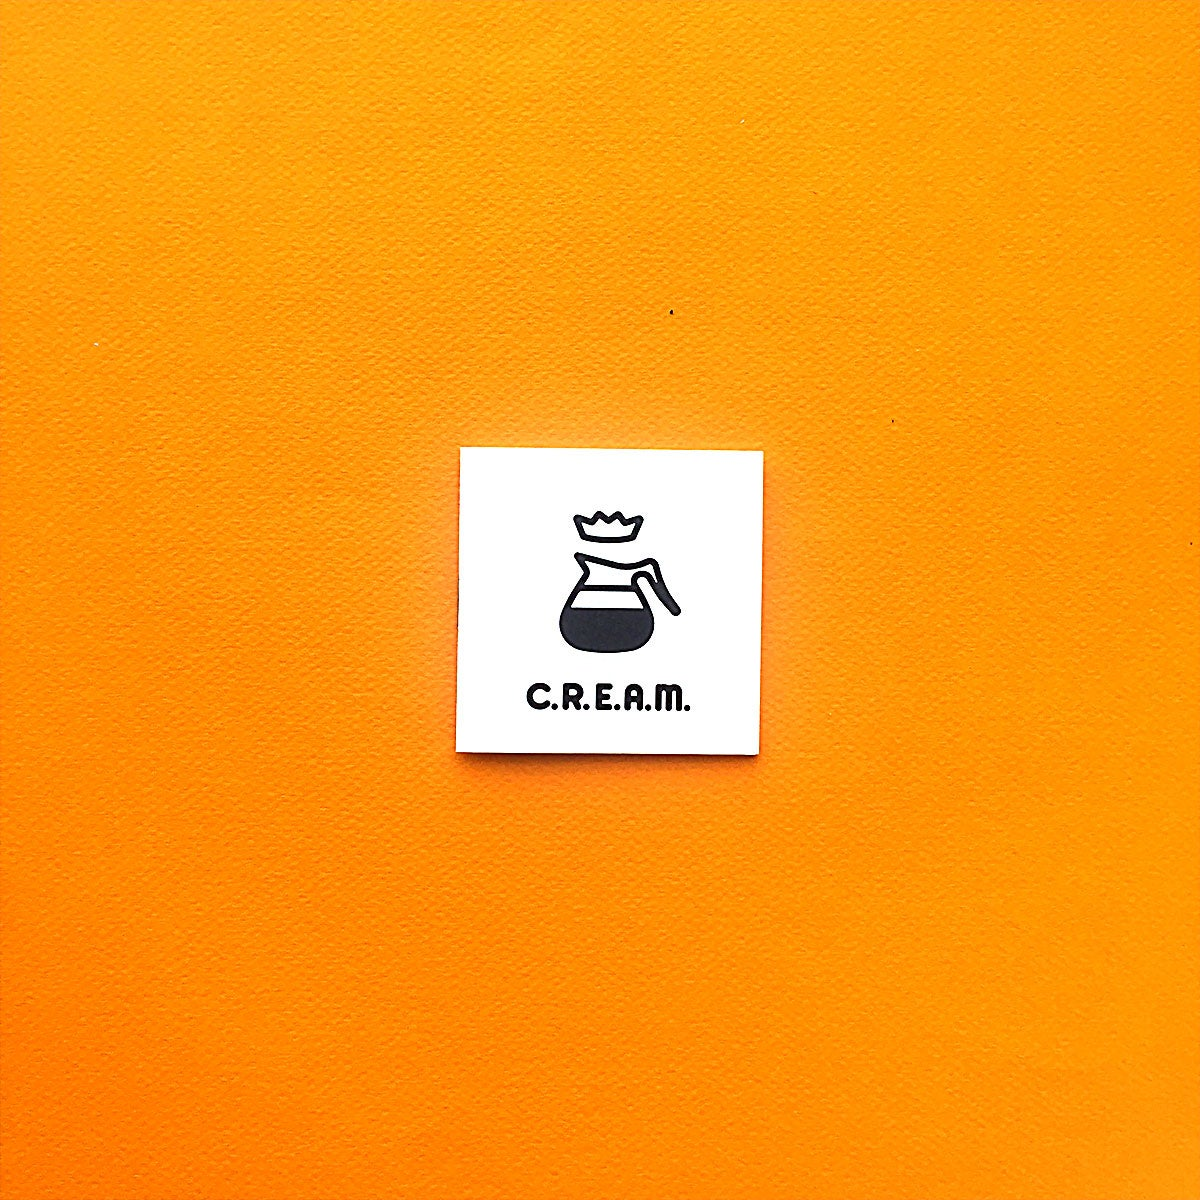 Image of C.R.E.A.M. Mini Zine